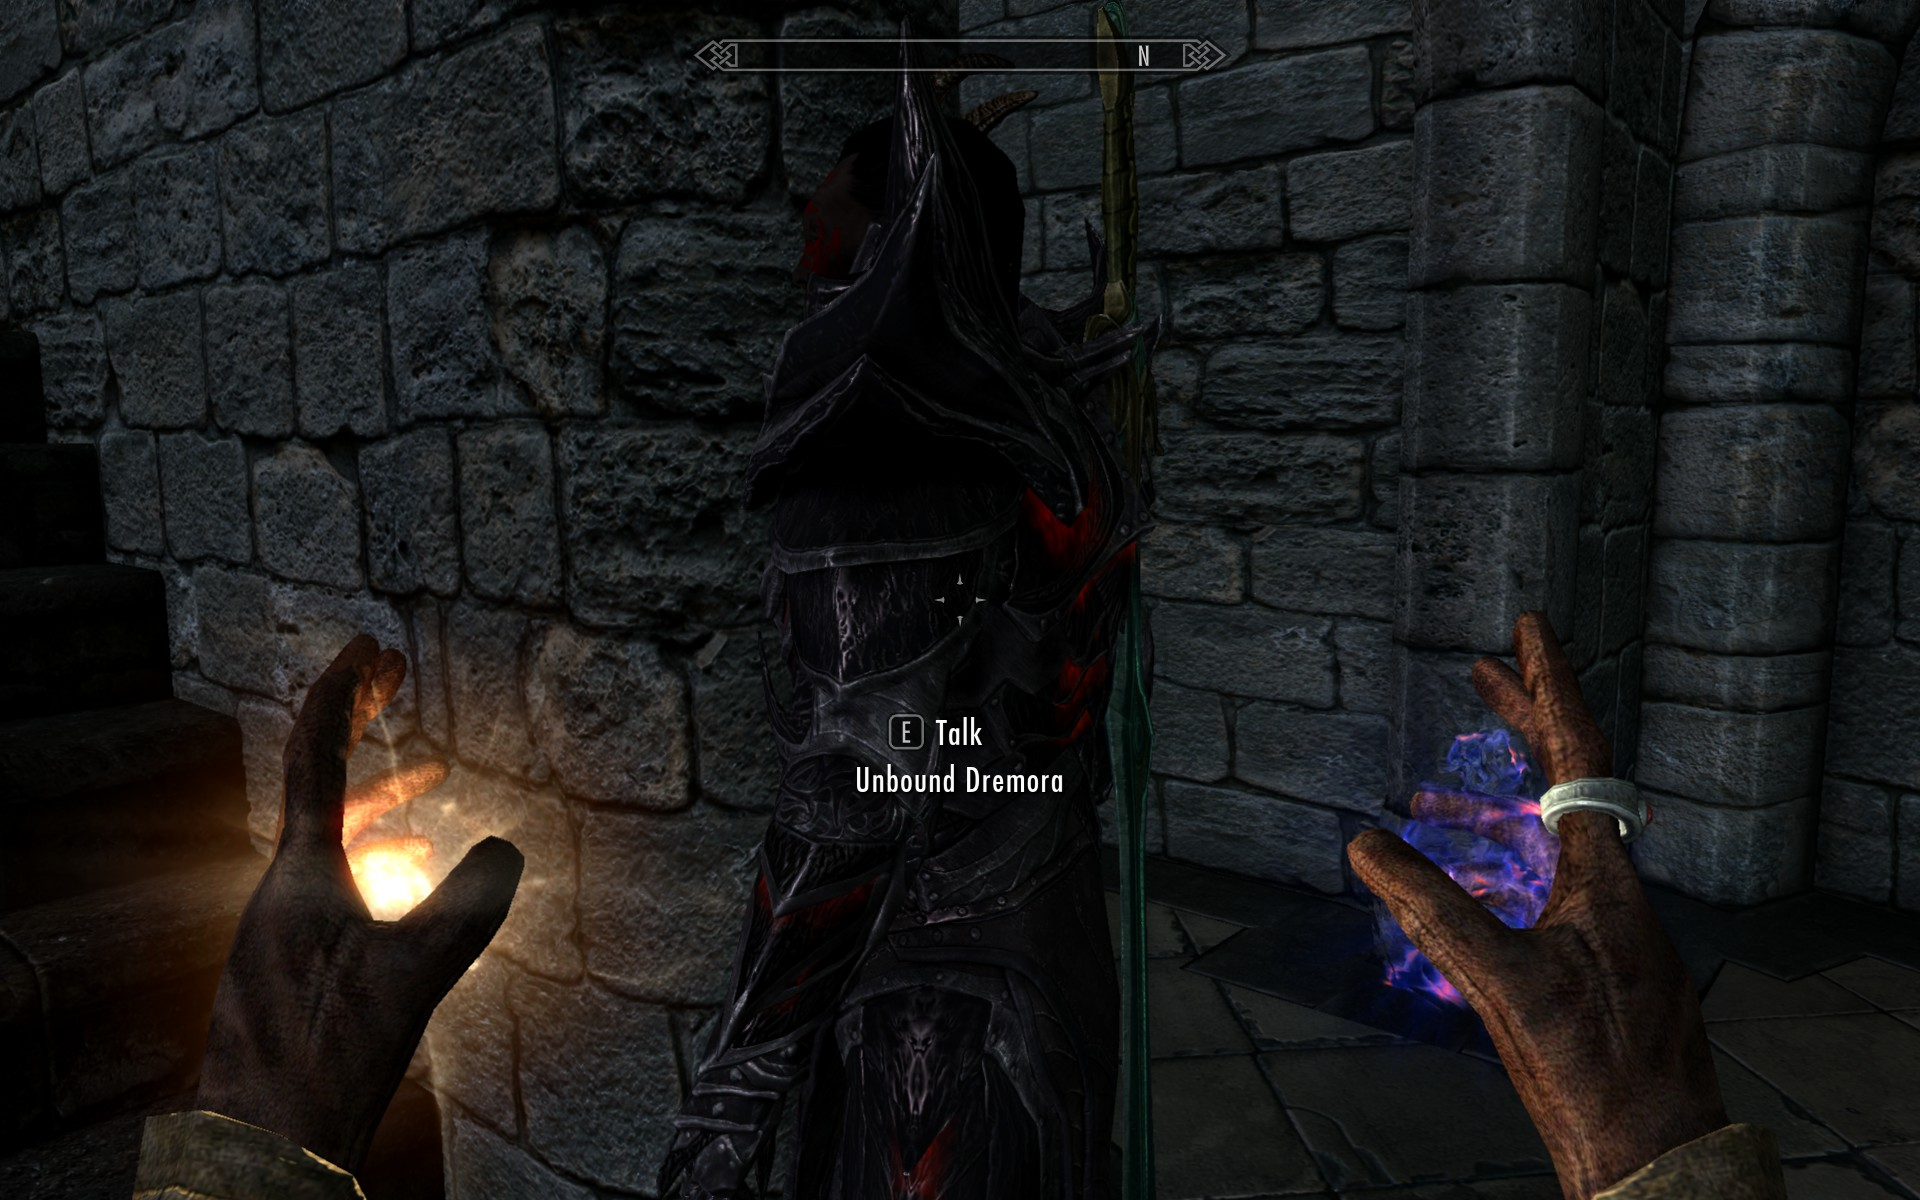 A screenshot from Skyrim shows an unbound dremora just wandering around.